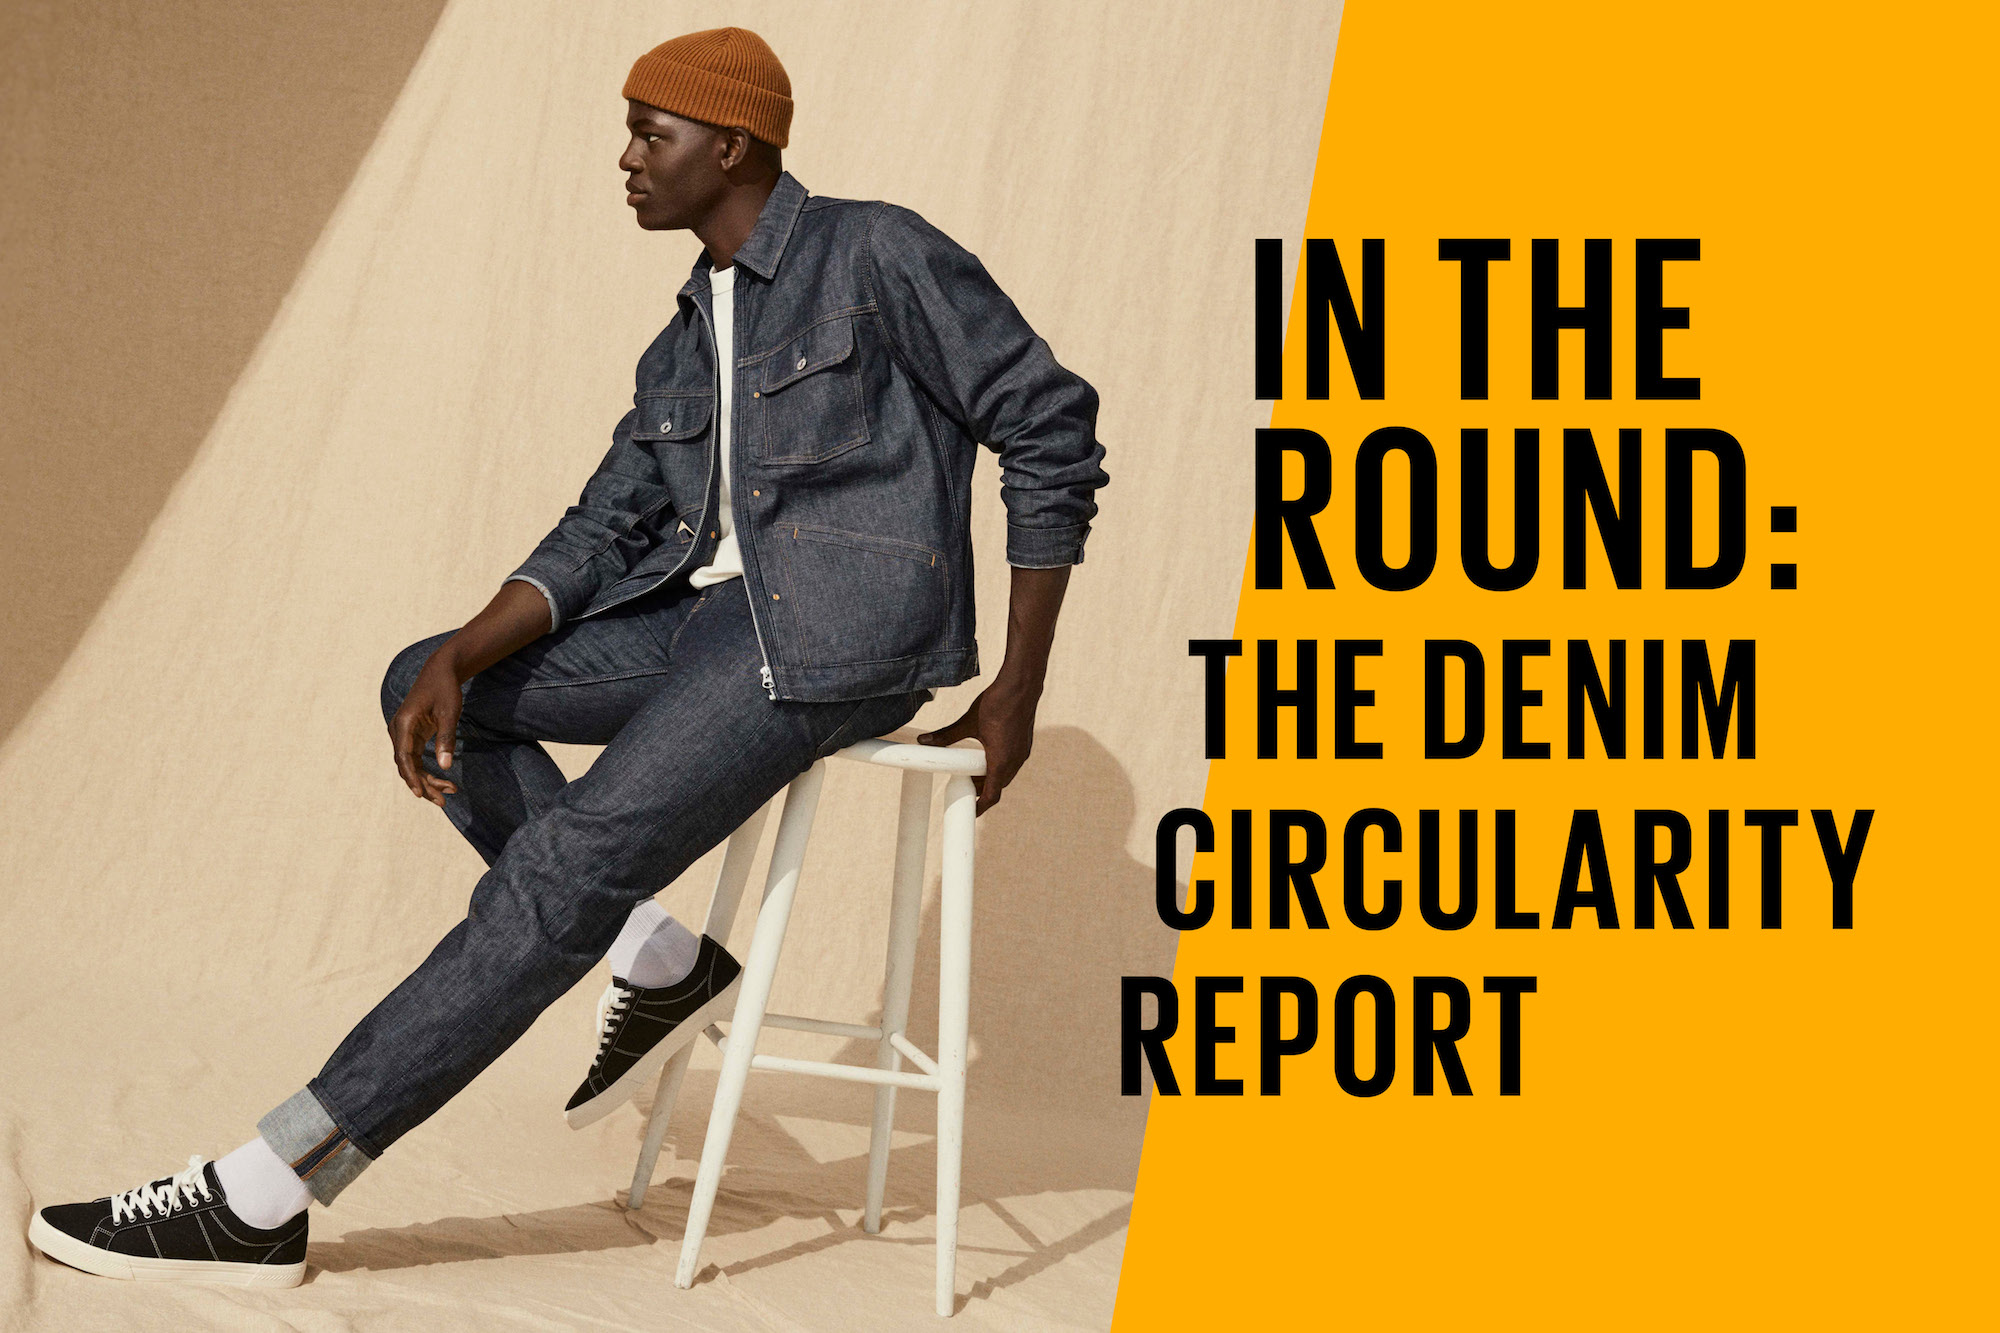 Amid the pressures of a global pandemic on the denim supply chain, some of circularity's biggest wins have occurred in 2020.